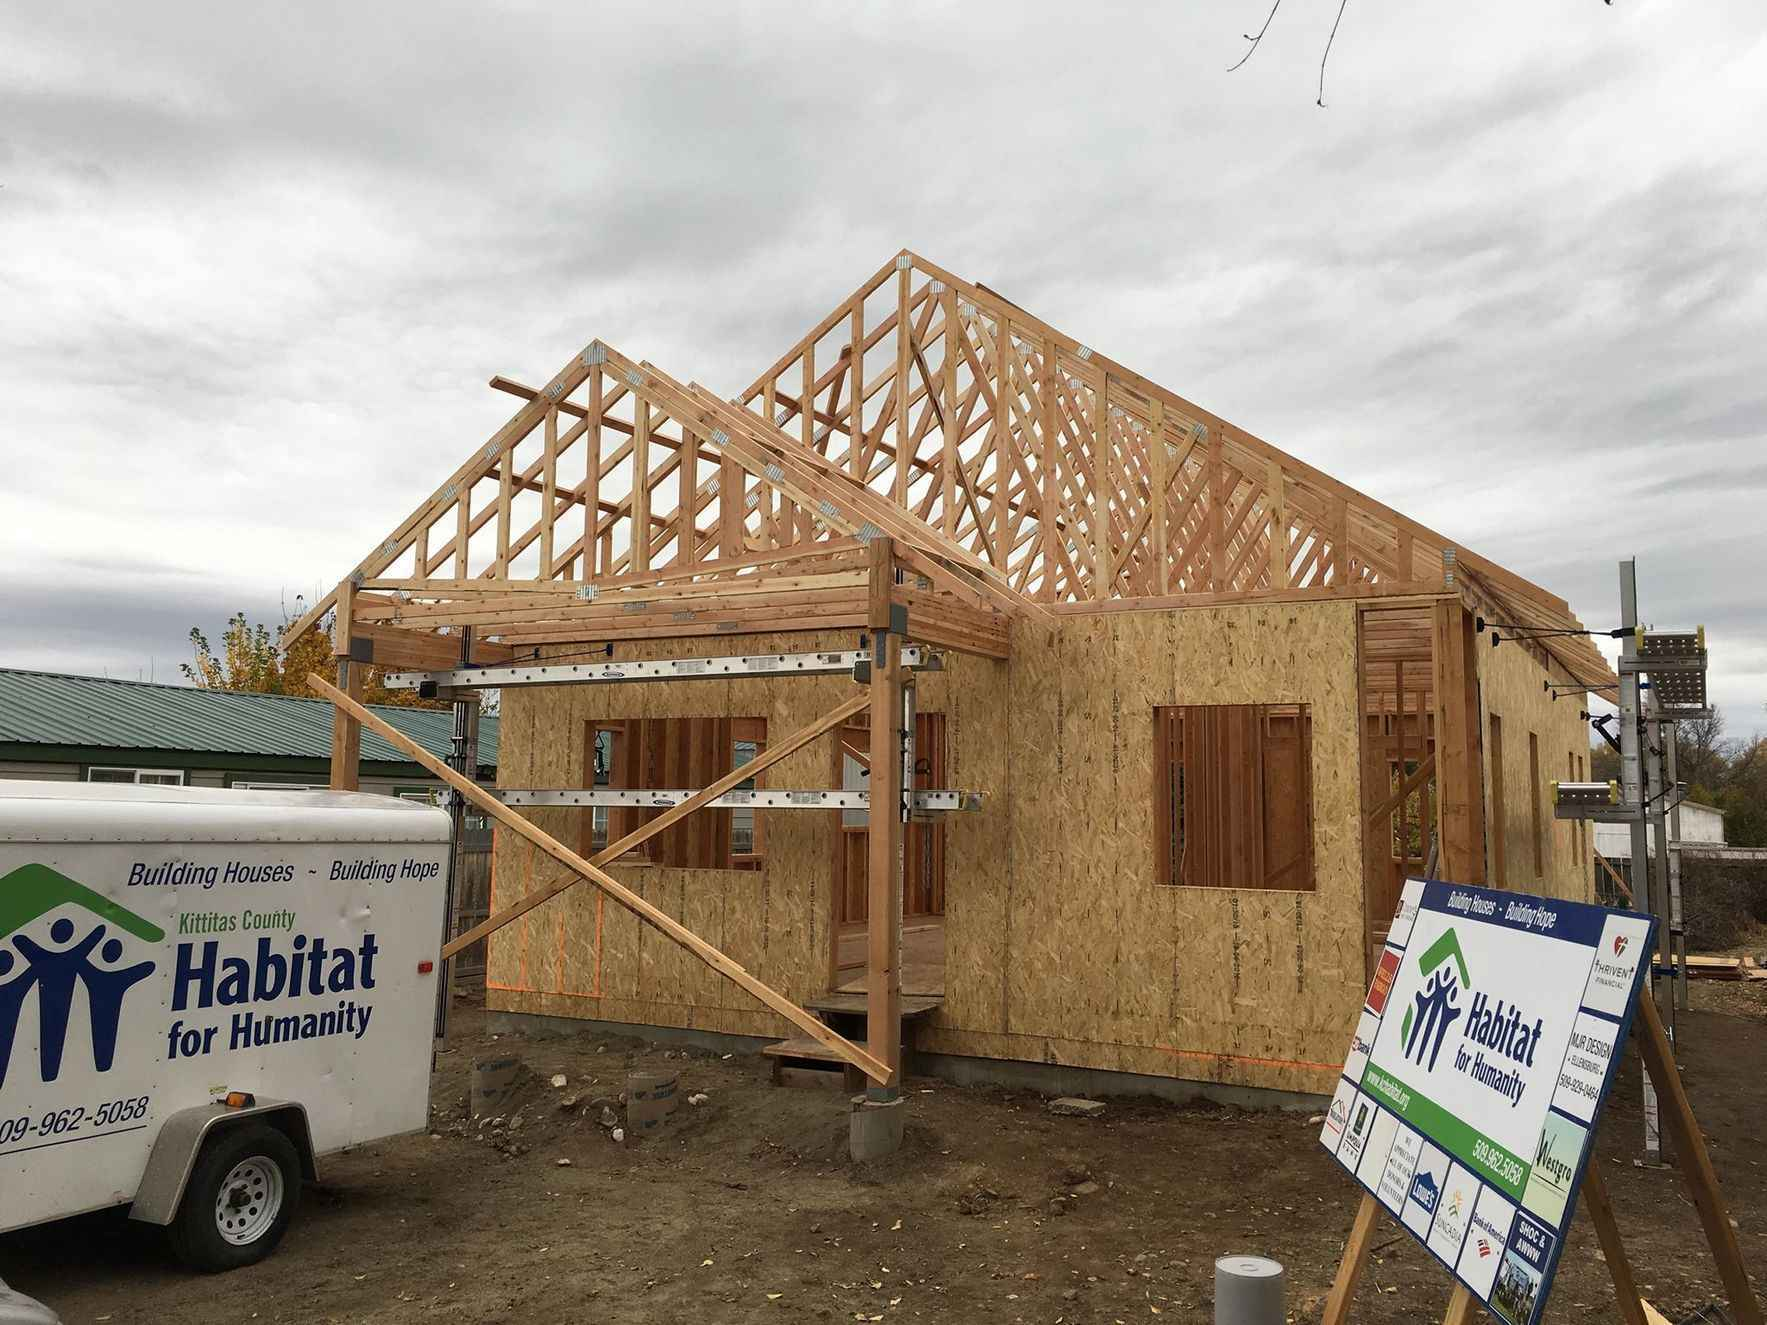 Make a difference in affordable housing for hard-working families in Kittitas County! image